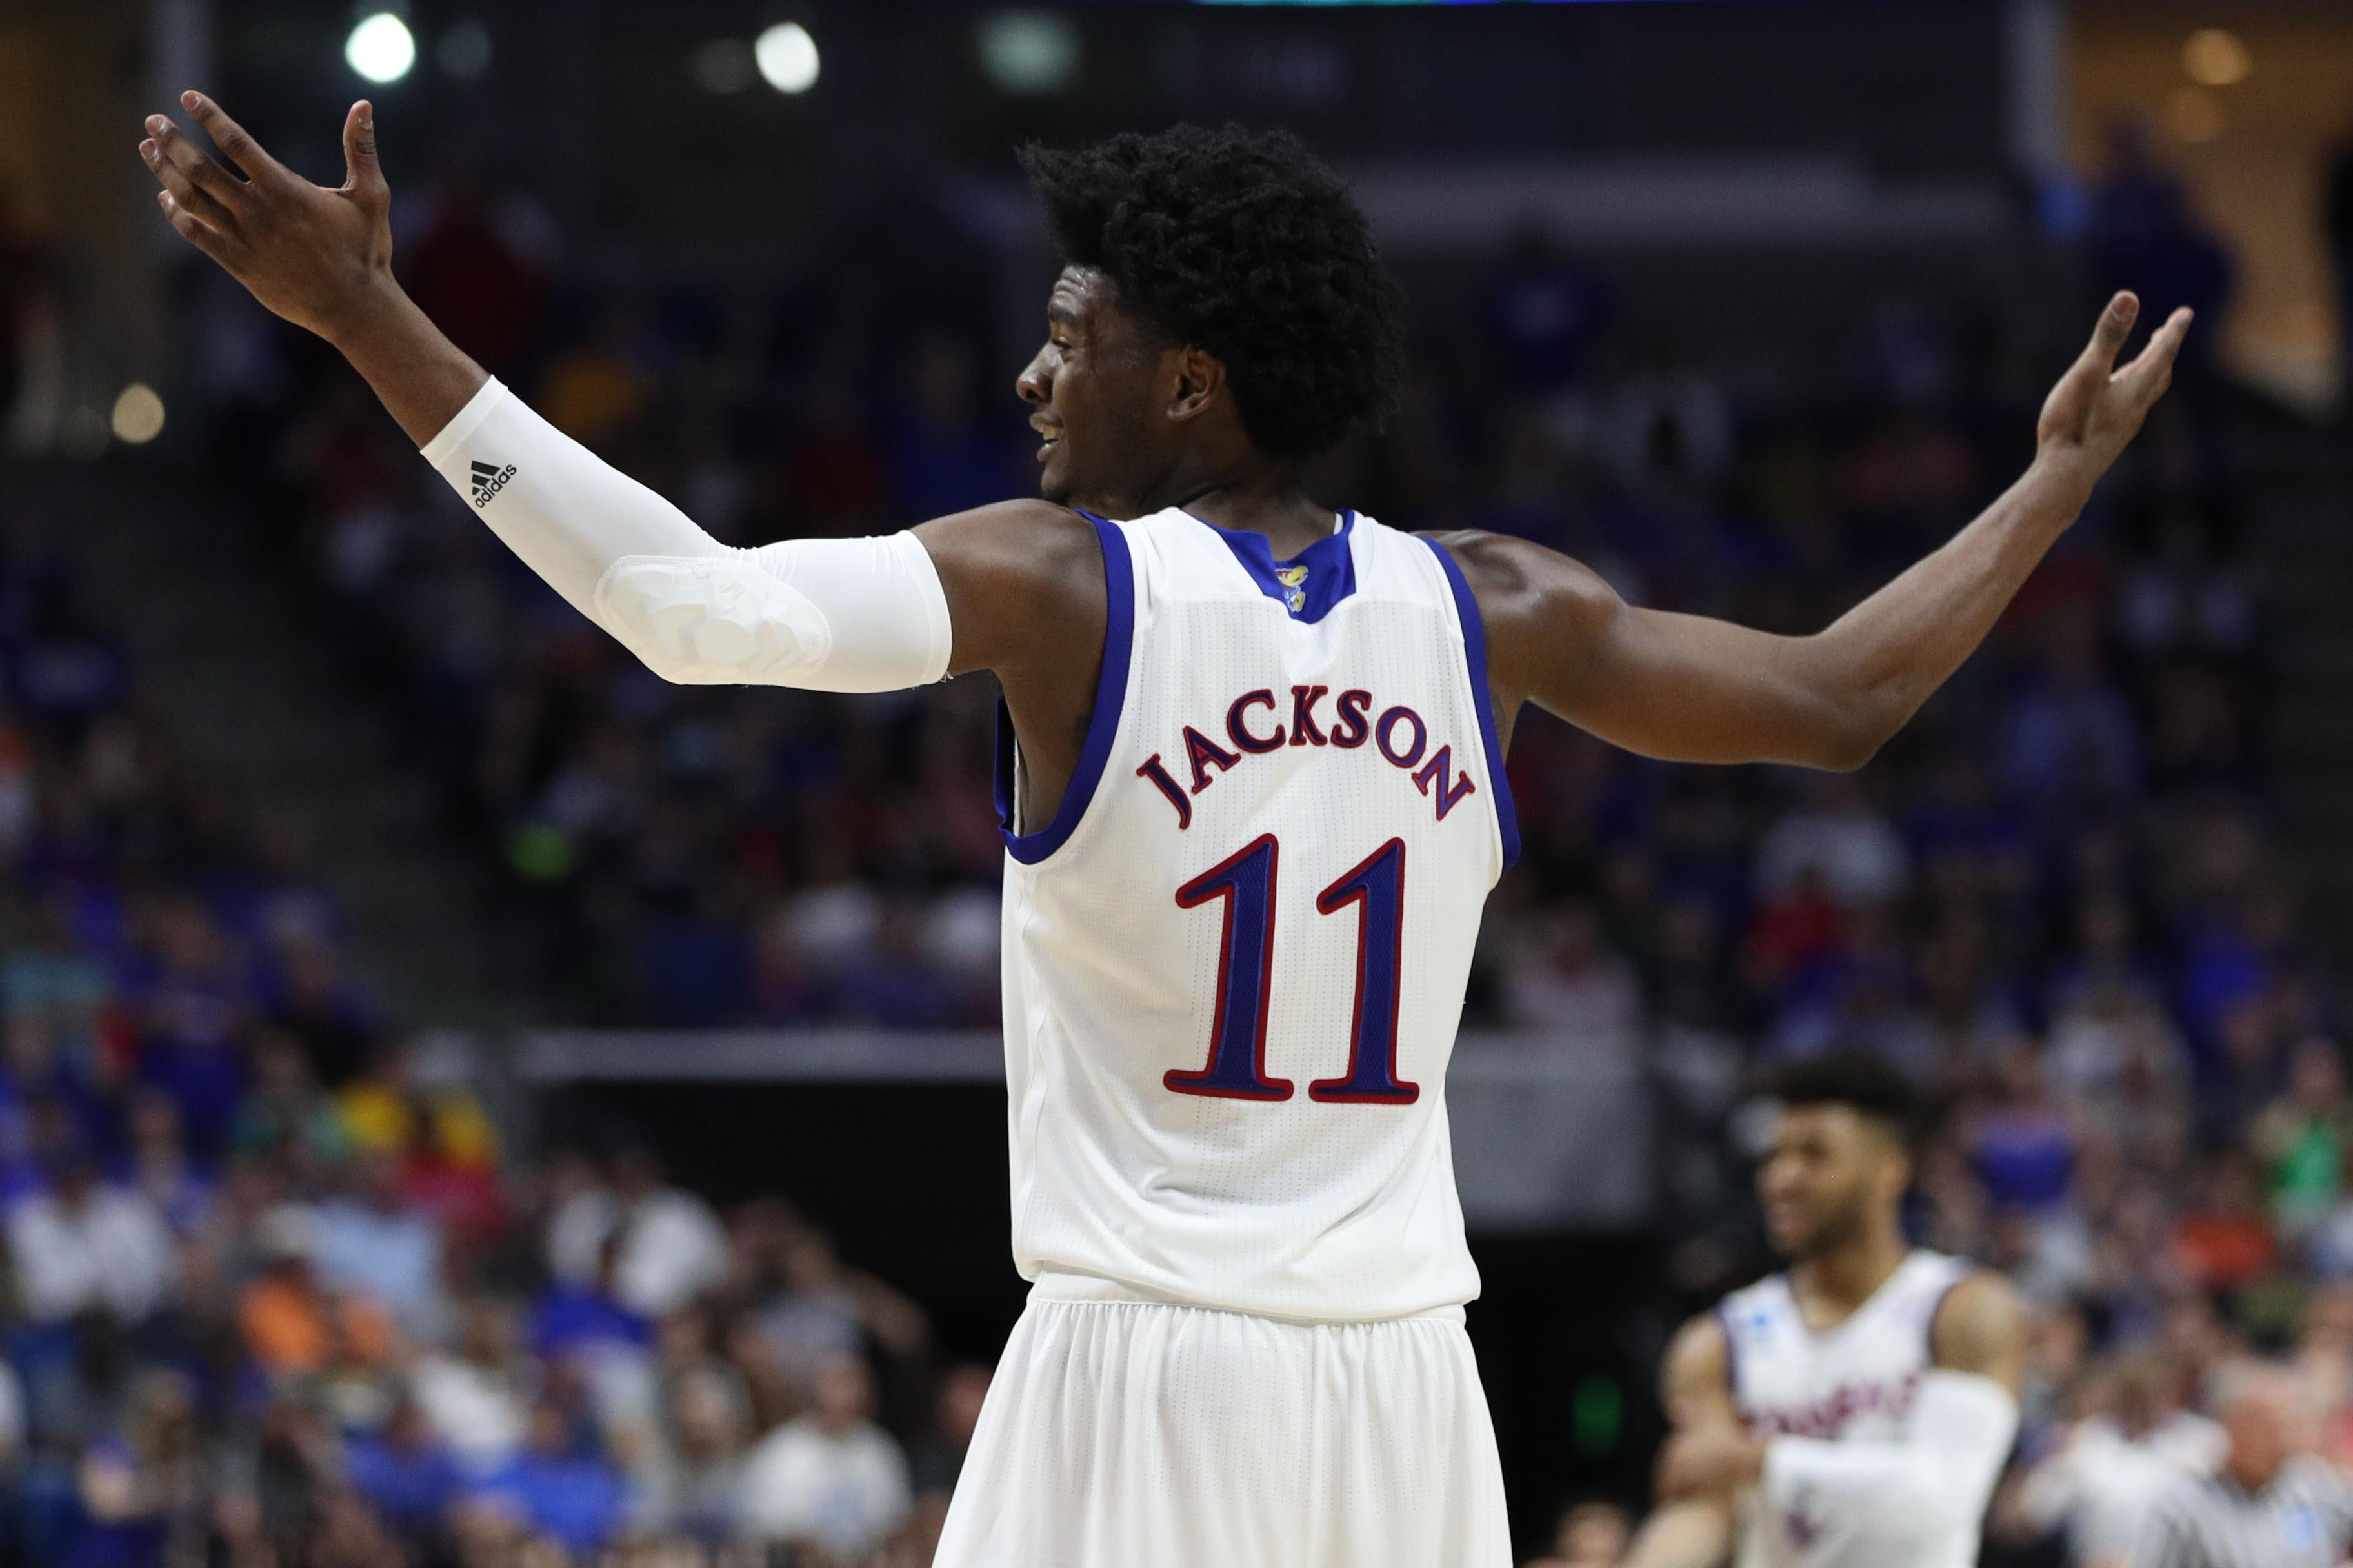 Could Suns pass over Josh Jackson in NBA draft because of off-court issue?